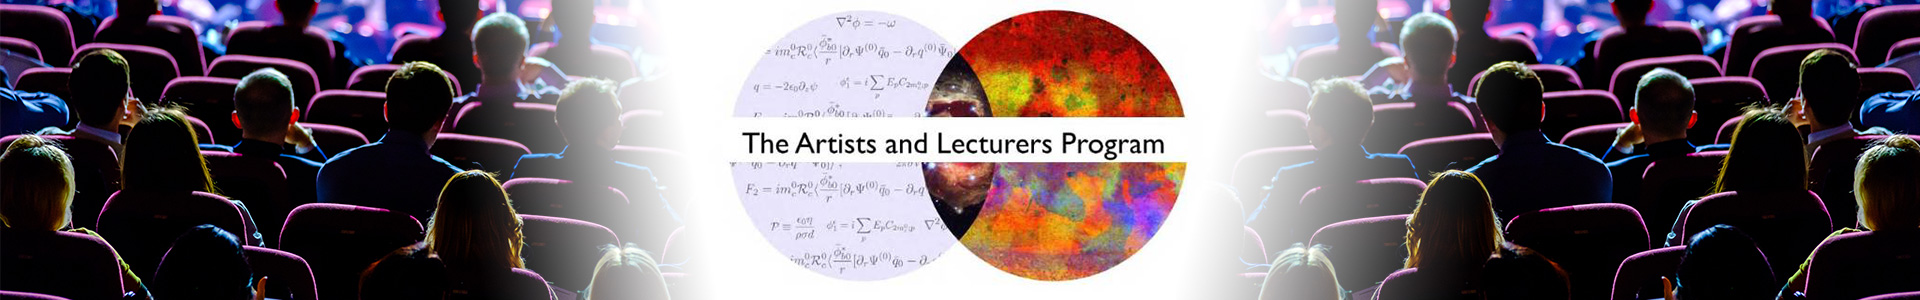 Artists and Lecturers Program logo with many students in auditorium seats watching a presentation.